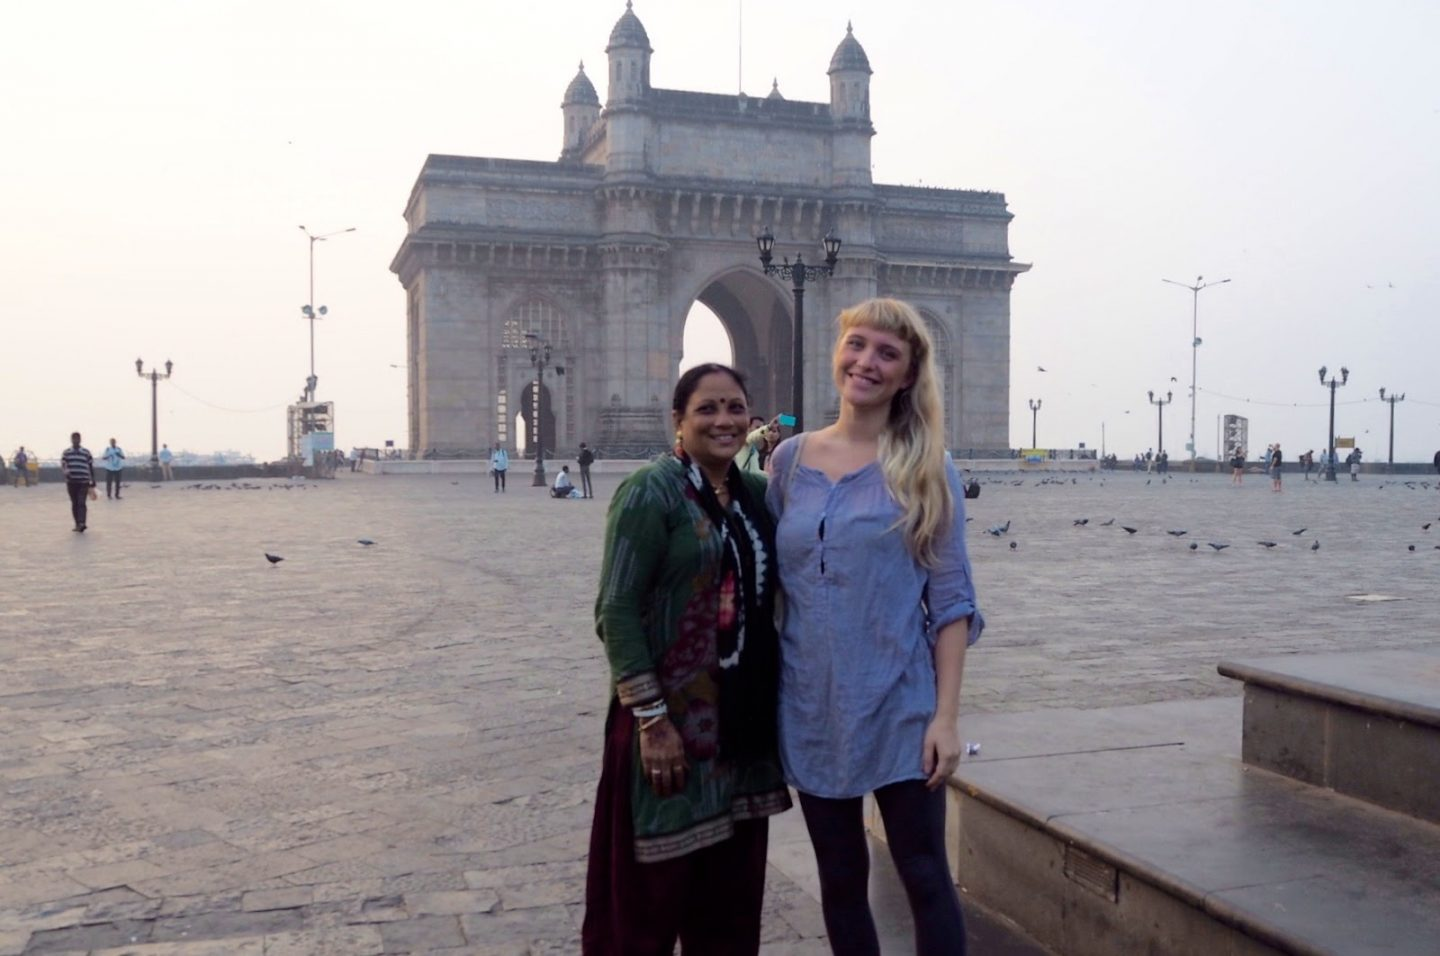 Indian lady wanted a photo with me at the gateway of india!